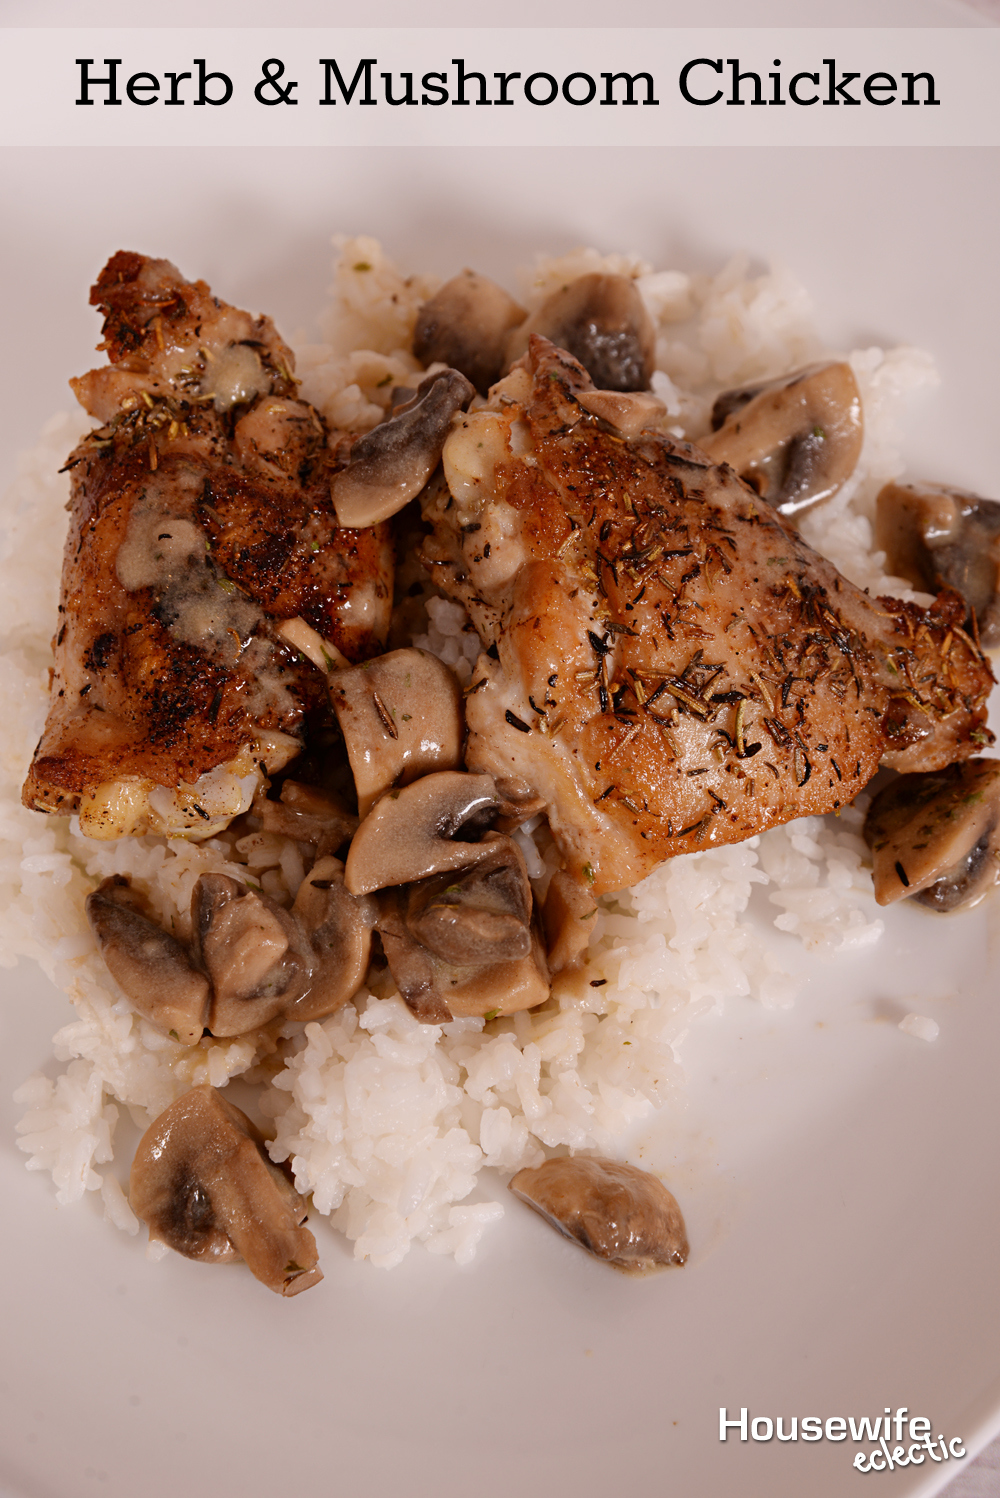 Herb & Mushroom Chicken - Housewife Eclectic